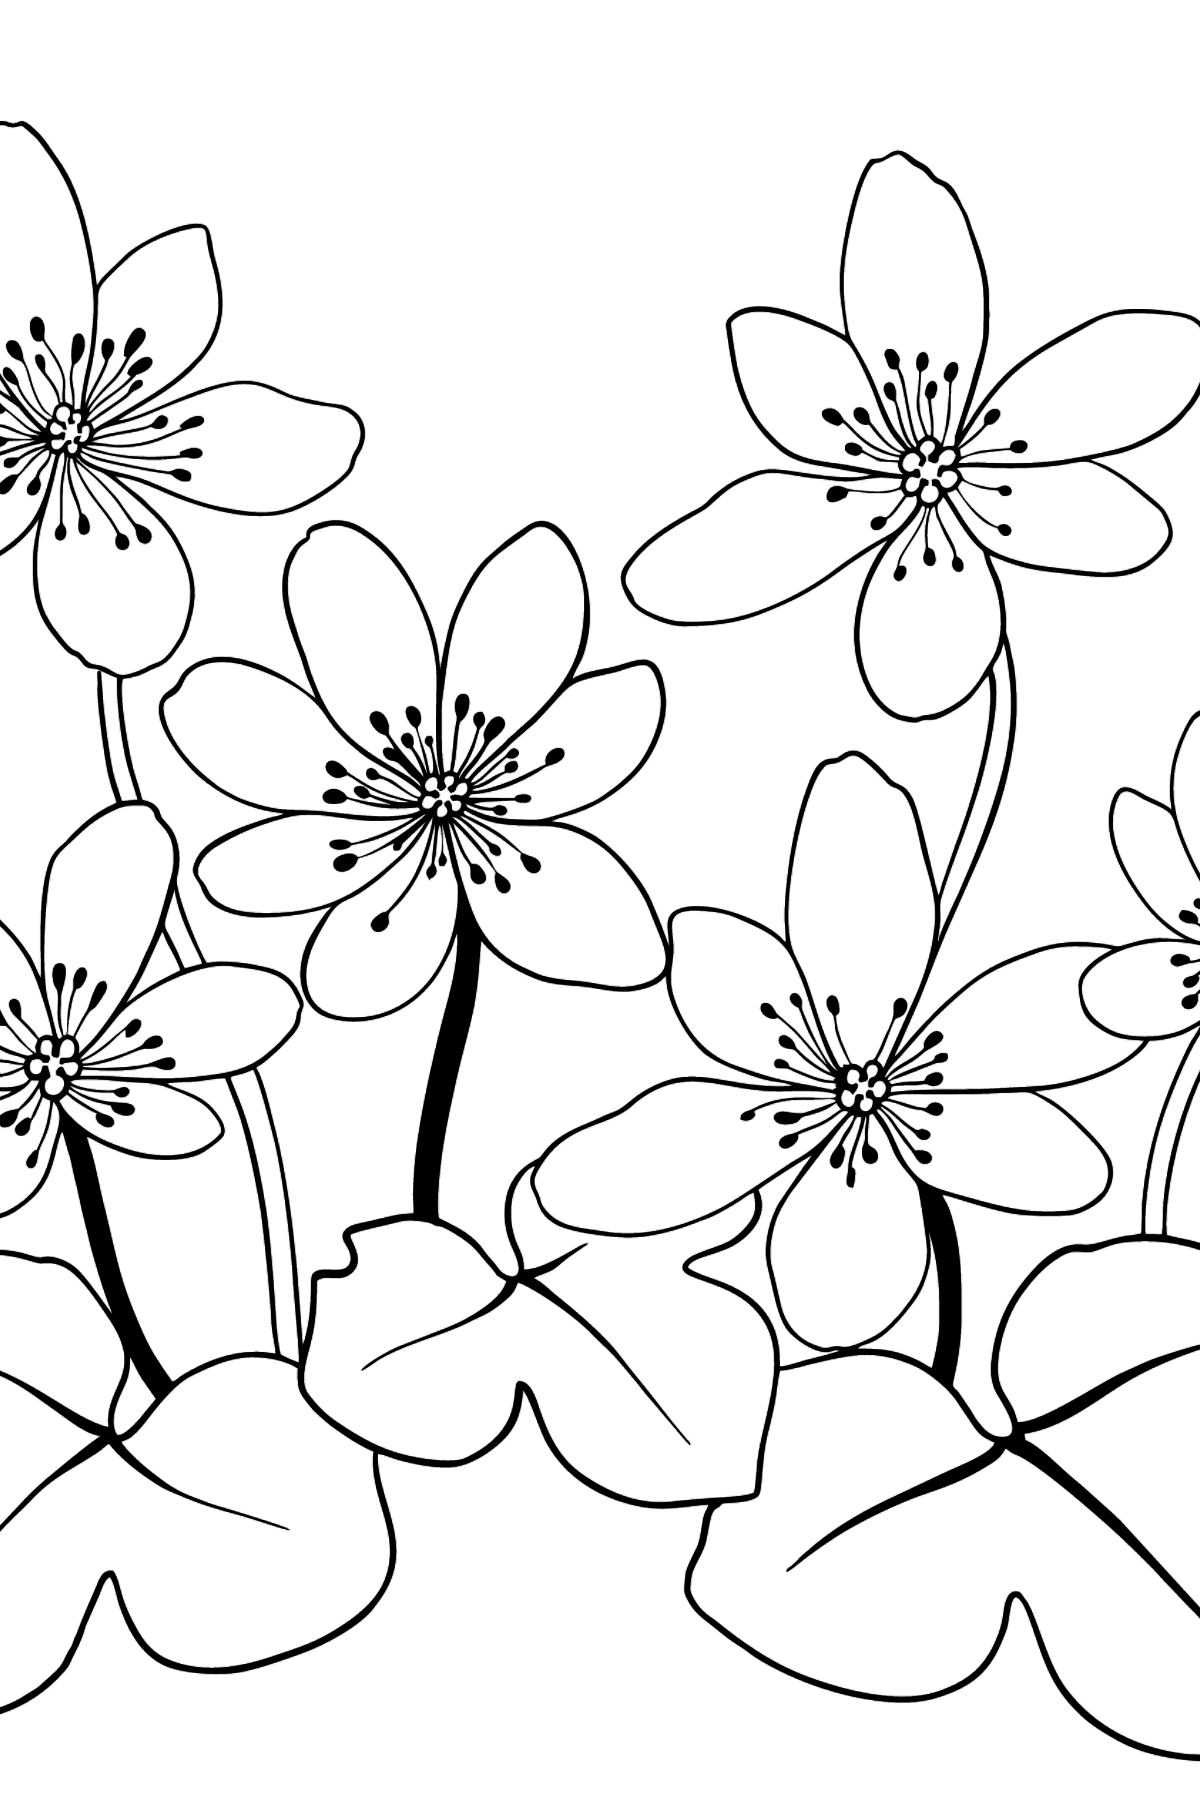 Flower Coloring Page - A Hepatica with Blue Petals - Coloring Pages for Kids